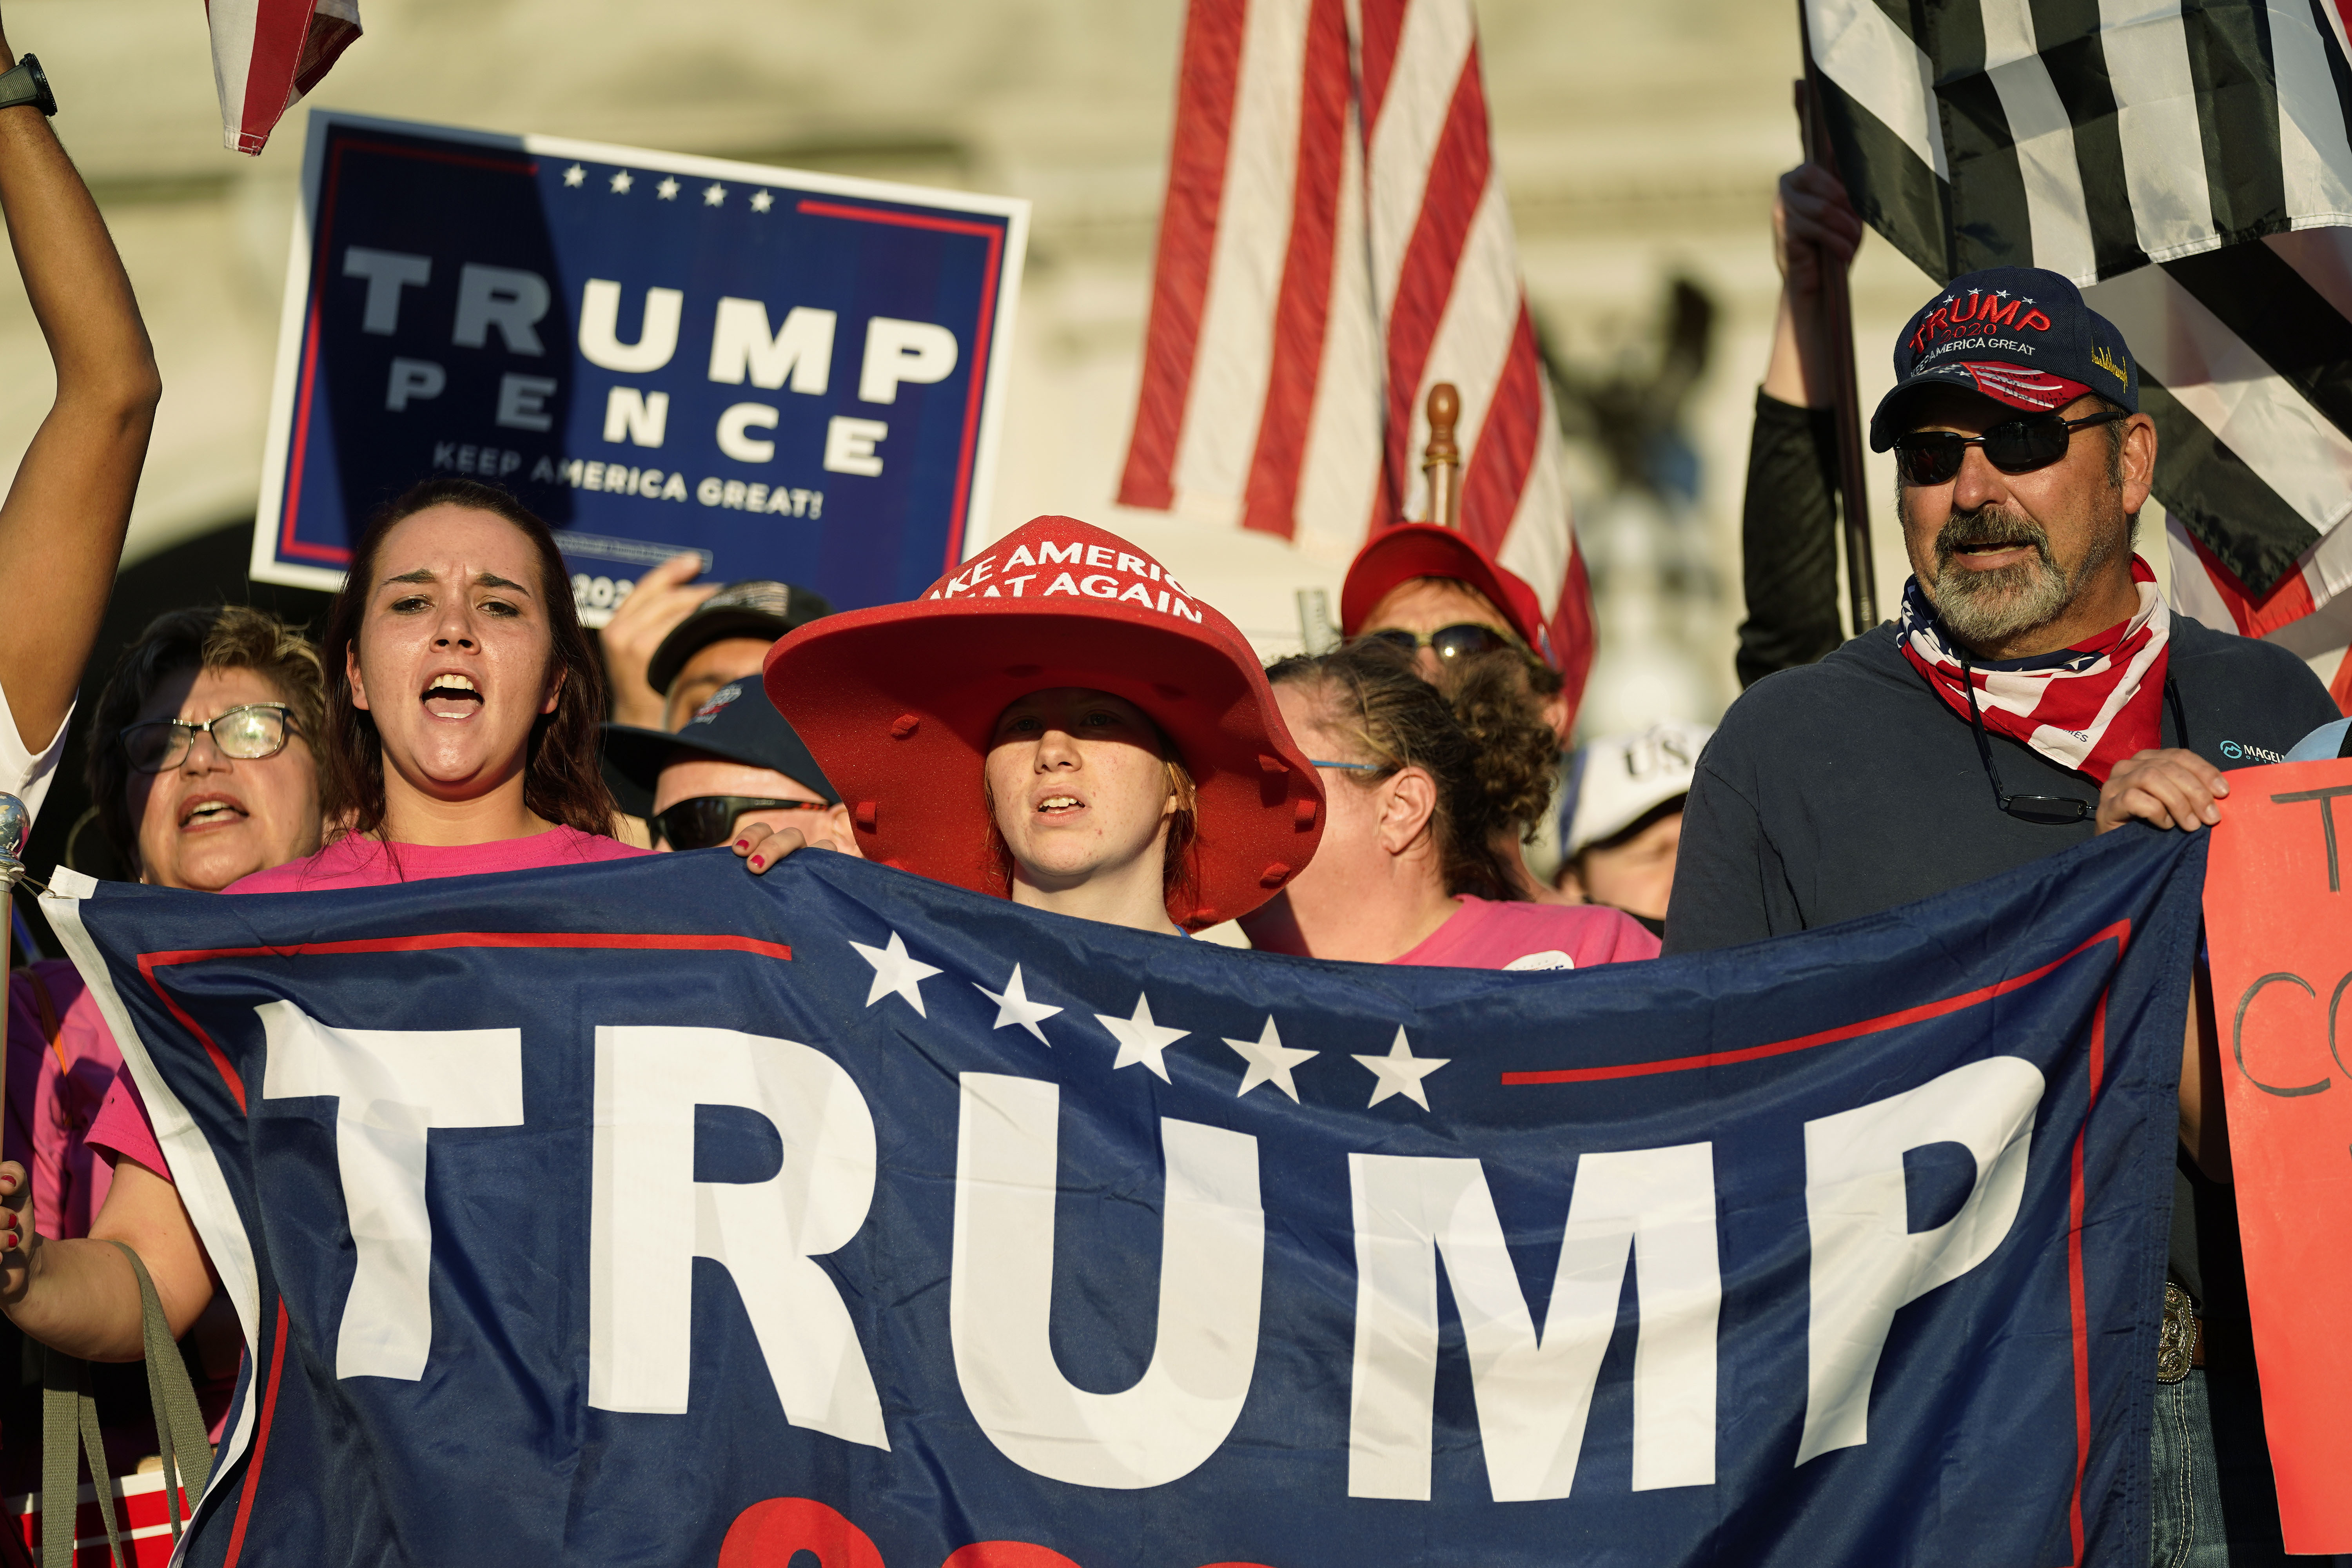 Supporters of President Donald Trump demonstrate outside the Pennsylvania State Capitol, Saturday, Nov. 7, 2020, in Harrisburg, Pa., after Democrat Joe Biden defeated Trump to become 46th president of the United States. (AP Photo/Julio Cortez)